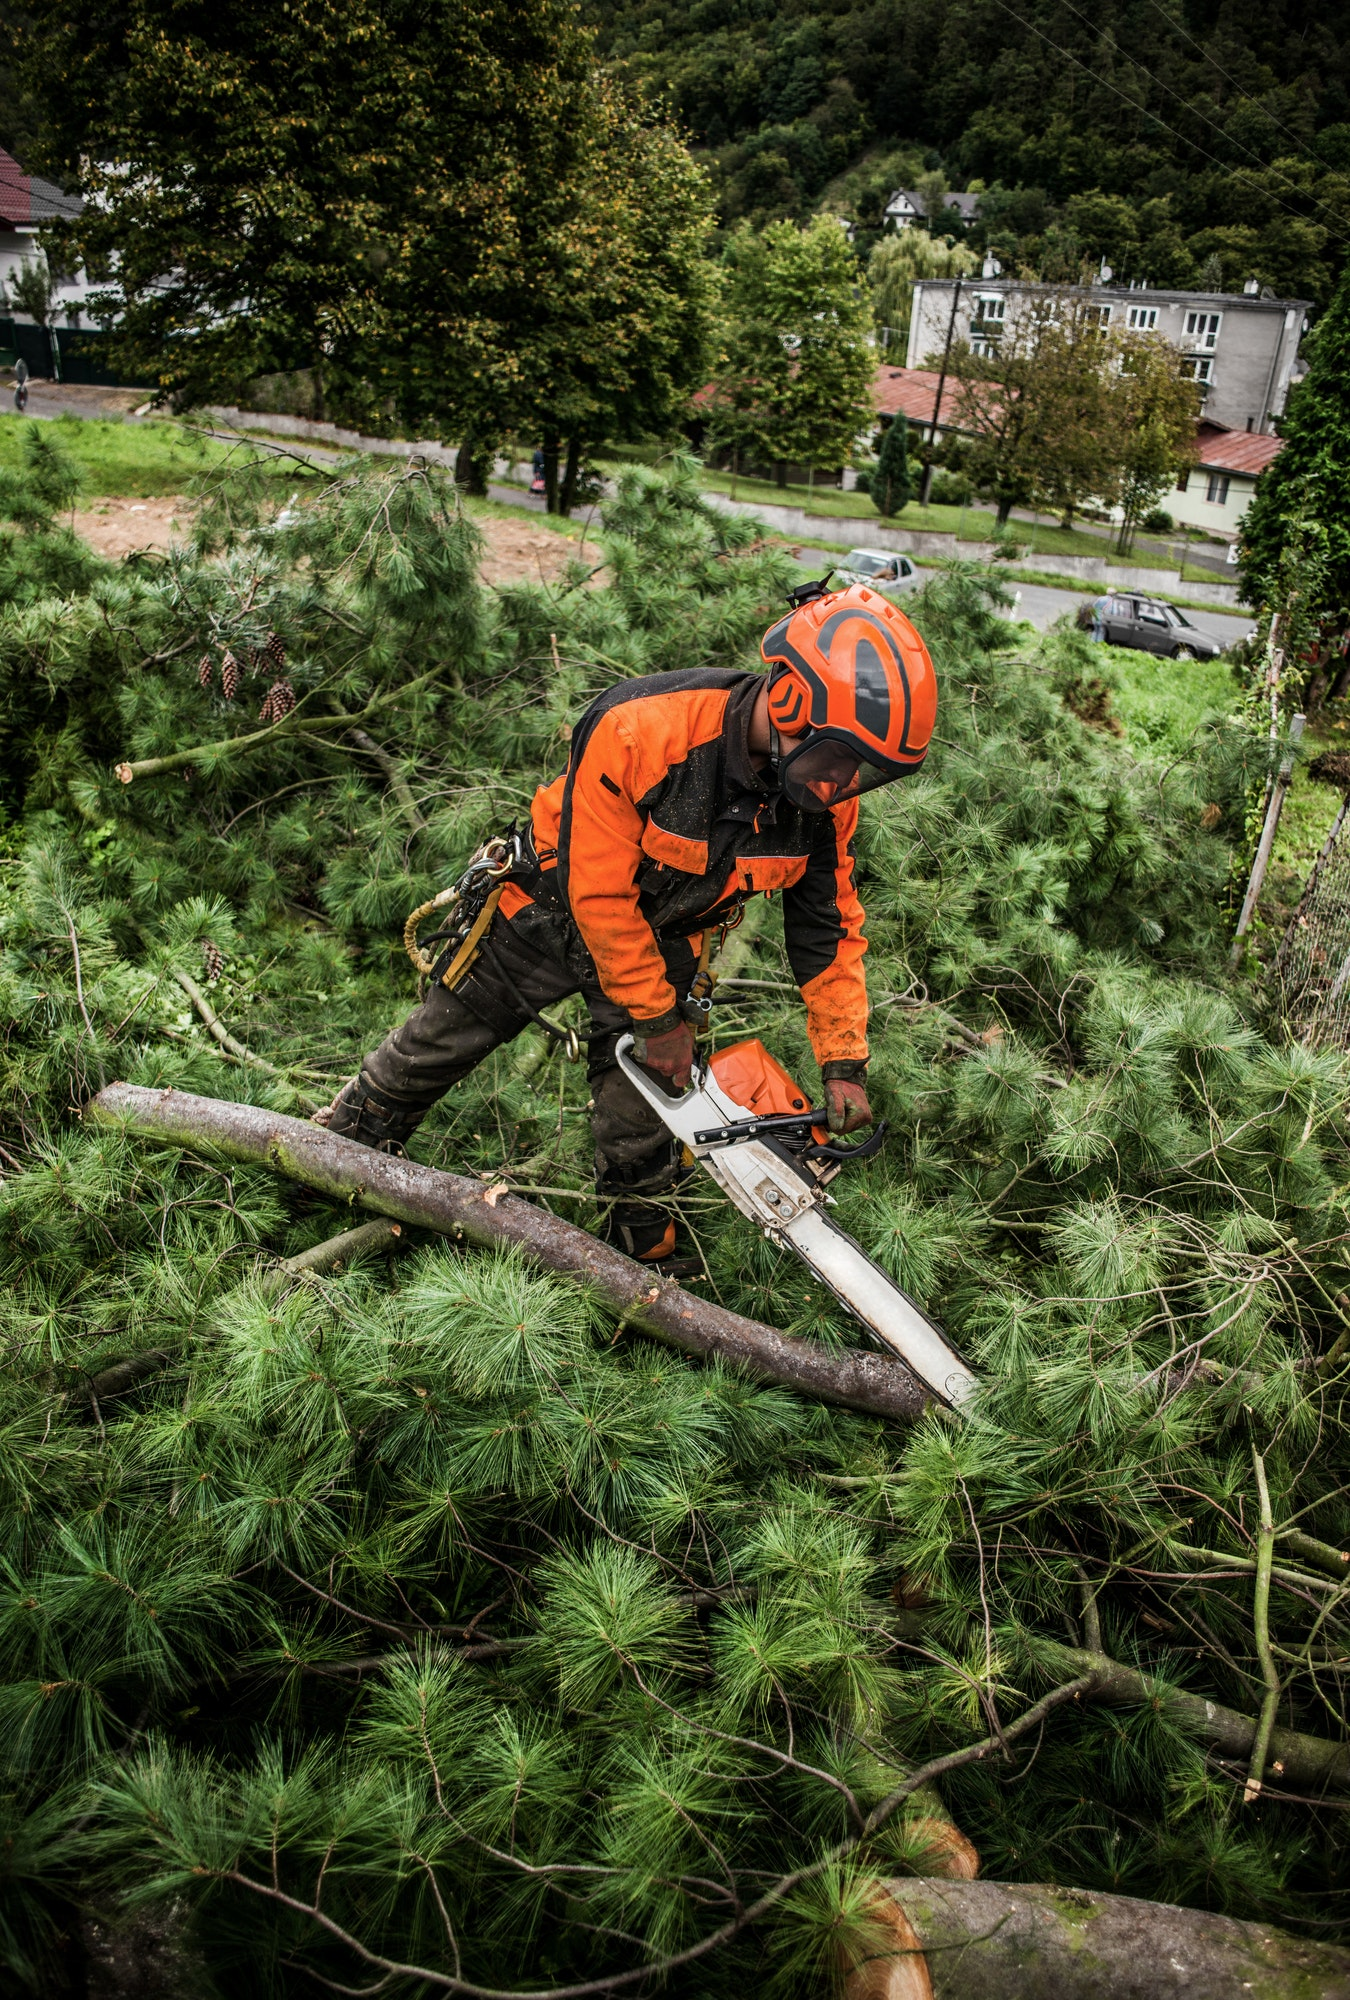 Lumberjack with chainsaw cutting a tree in town.